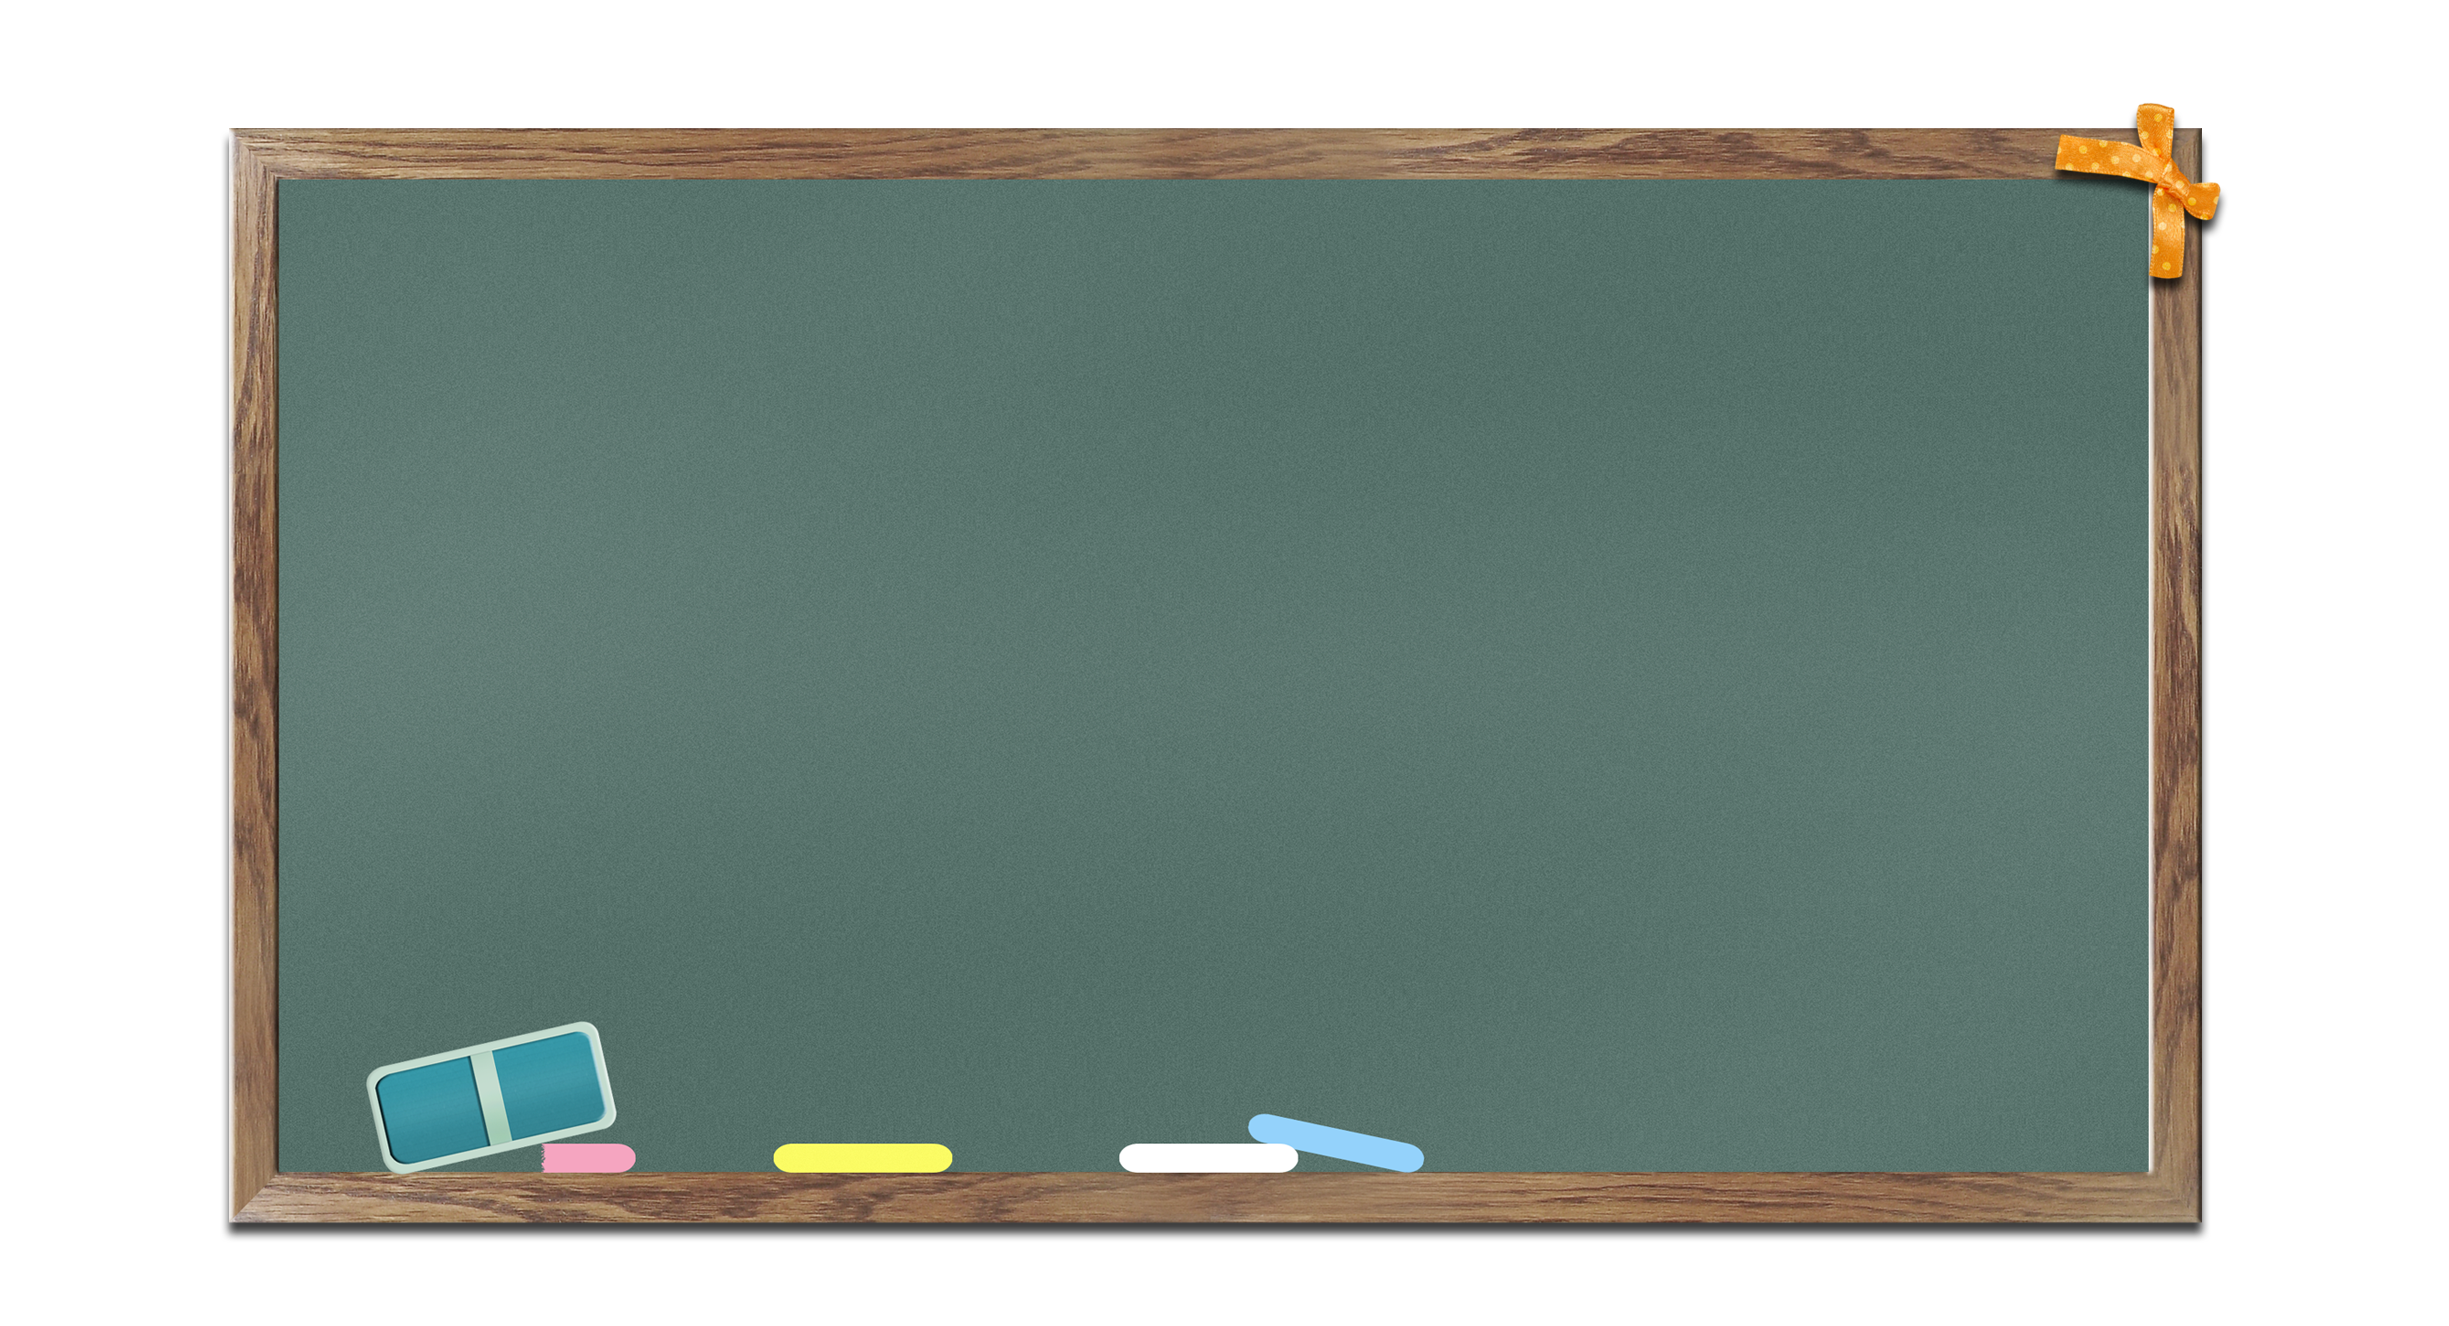 Chalk rectangle png. Blackboard learn brand teal